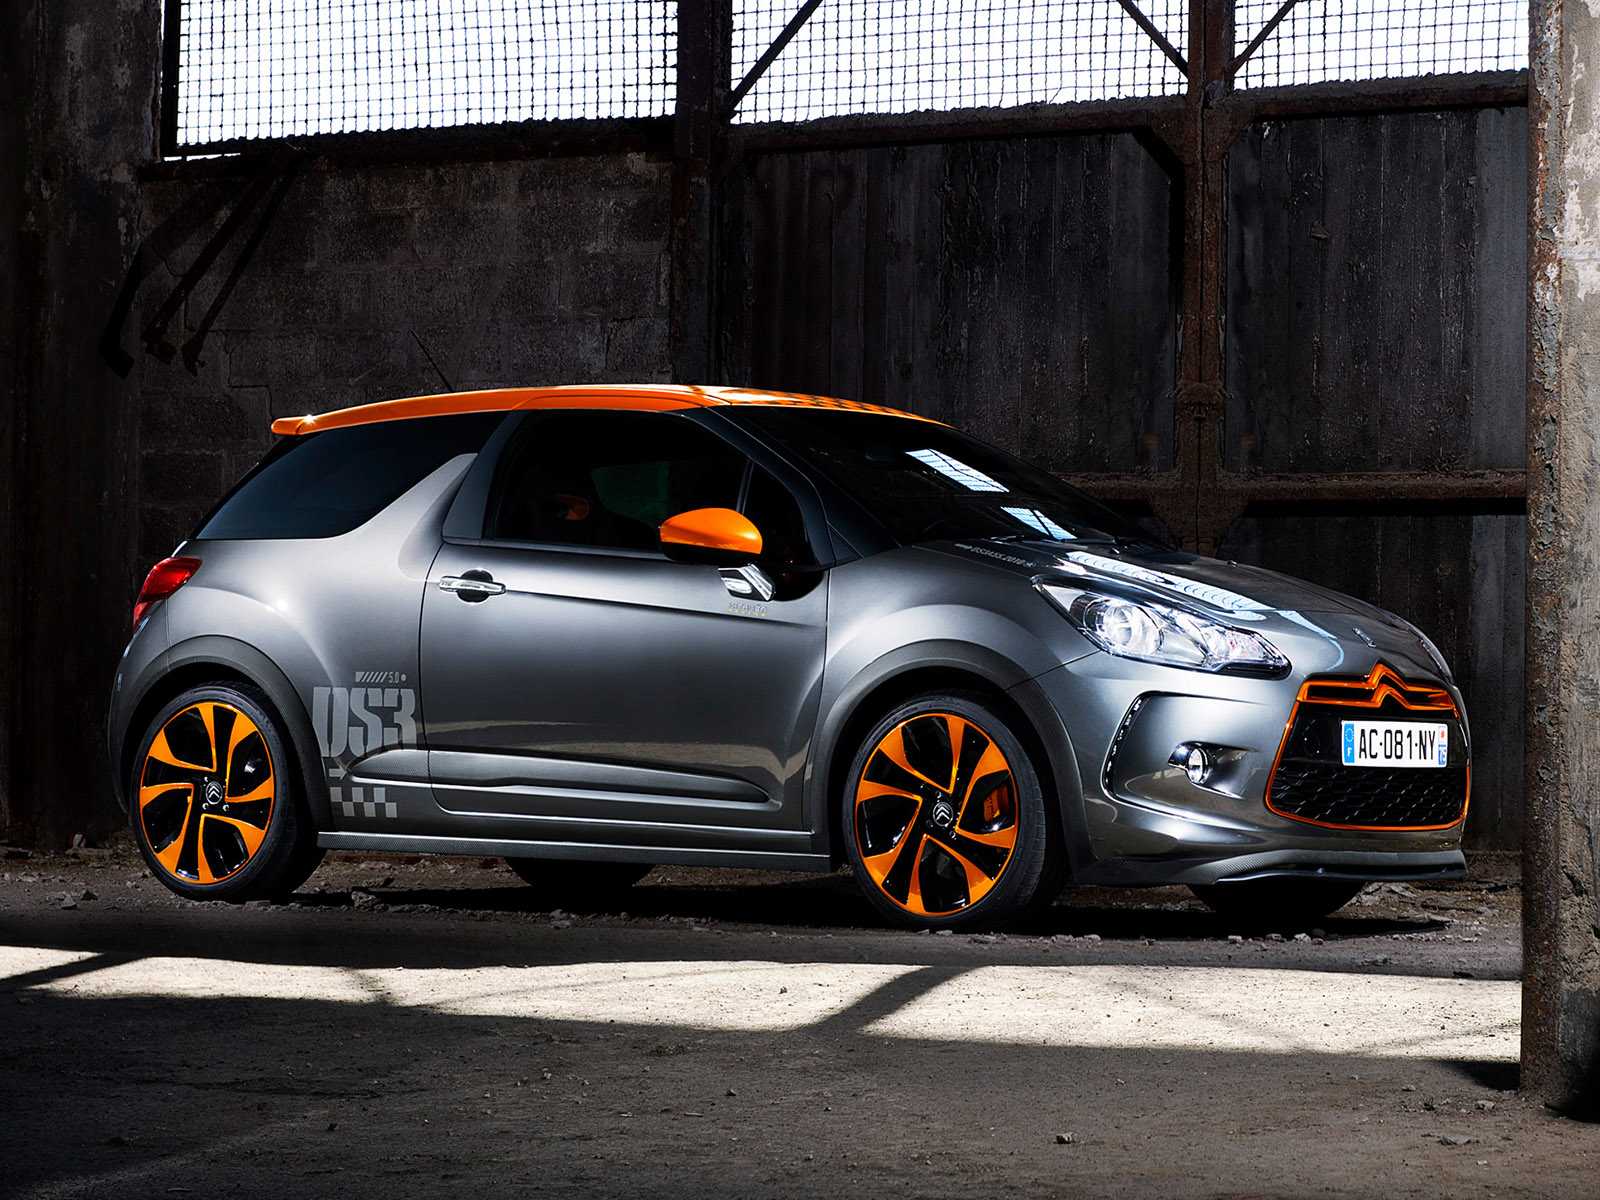 citroen ds3 racing 2010 citroen ds3 racing 2010 photo 03 car in pictures car photo gallery. Black Bedroom Furniture Sets. Home Design Ideas